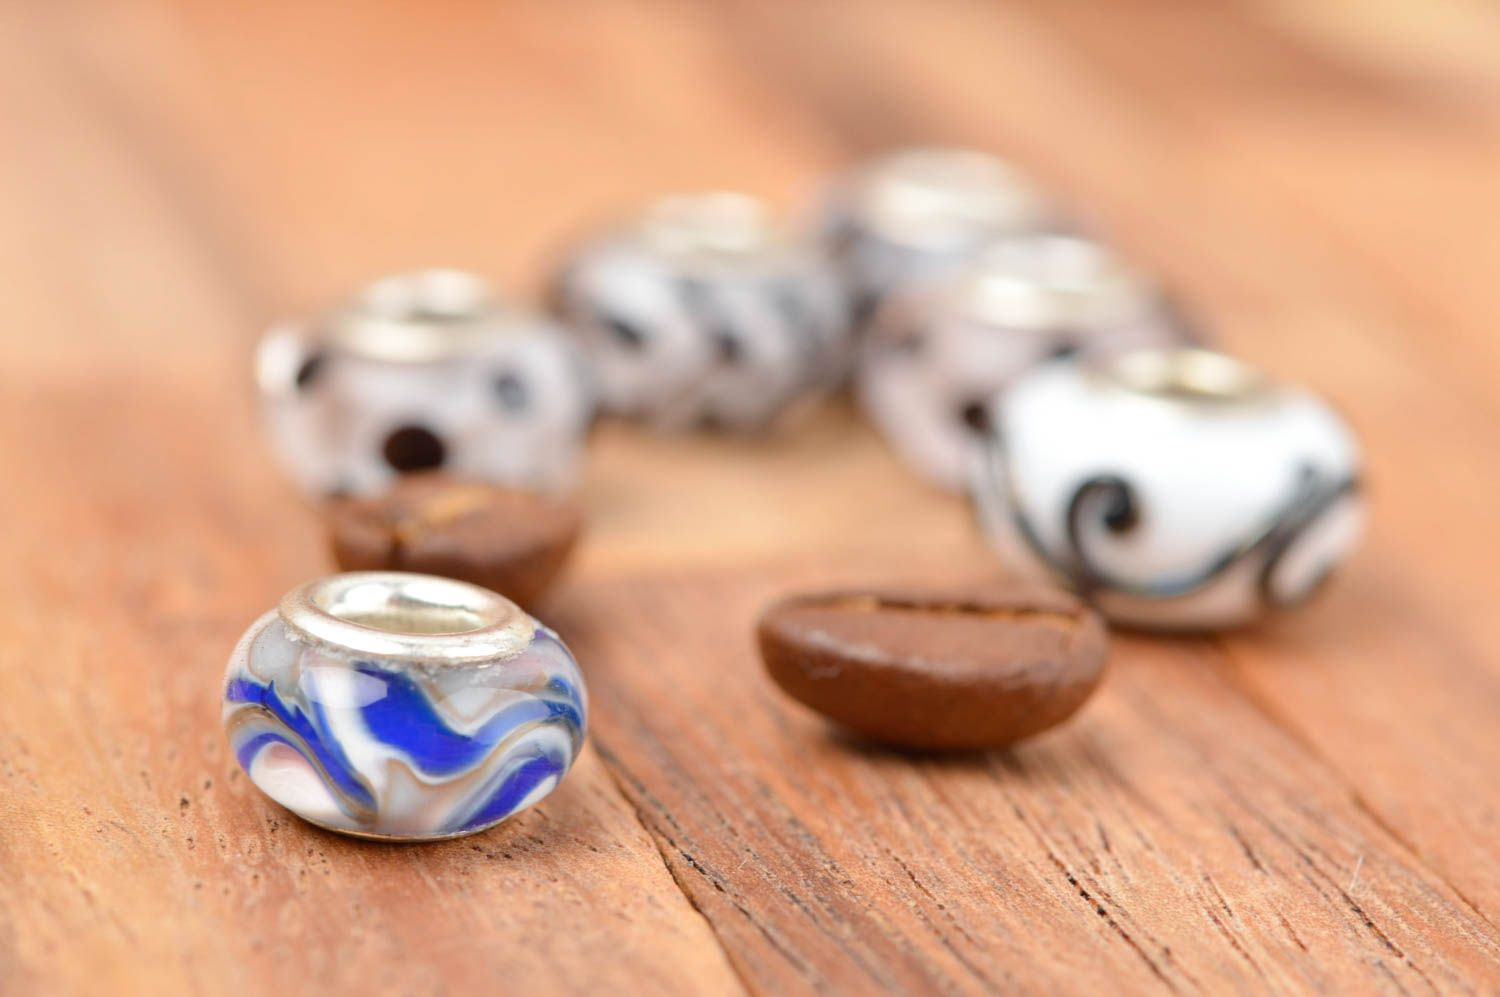 Handmade fittings beads fittings unusual beads fittings for accessories photo 2